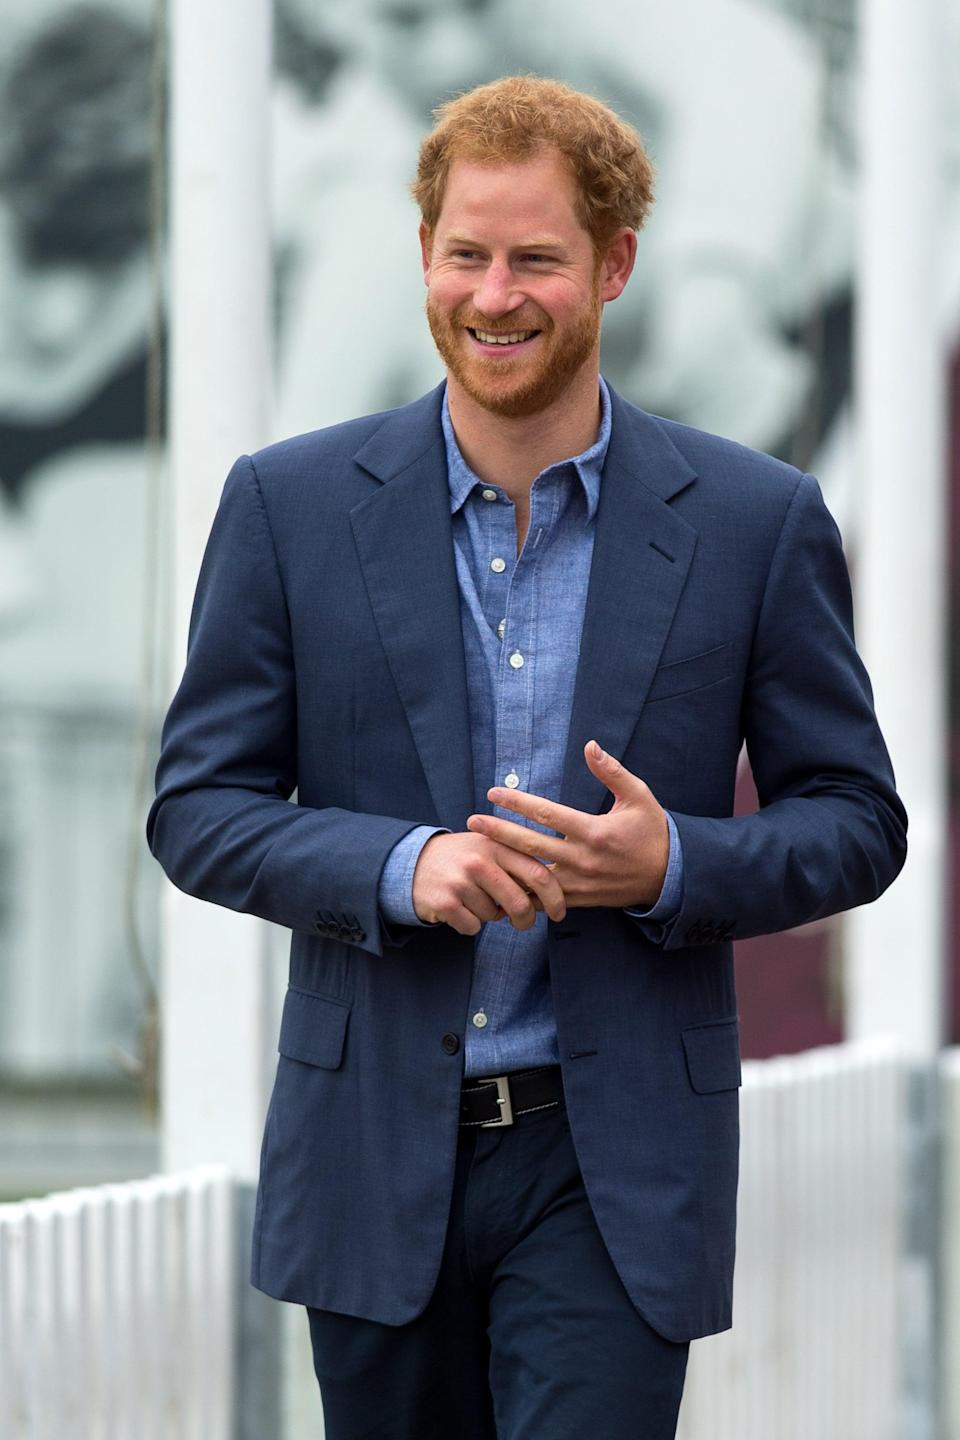 """<p>In March 2021, it was announced that <a href=""""https://www.popsugar.com/celebrity/prince-harry-lands-chief-impact-officer-at-betterup-48232298"""" class=""""link rapid-noclick-resp"""" rel=""""nofollow noopener"""" target=""""_blank"""" data-ylk=""""slk:Harry is now the chief impact officer"""">Harry is now the chief impact officer</a> of San Francisco-based wellness startup BetterUp. The company provides professional coaching and mental health advice, and in a statement to the <strong>Wall Street Journal</strong>, the duke stated that he intends to """"help create impact in people's lives."""" Harry added, """"Proactive coaching provides endless possibilities for personal development, increased awareness, and an all-round better life.""""</p> <p>In his role as chief impact officer, Harry will reportedly have input on initiatives that include product strategy decisions and charitable contributions. He'll also be able to advocate publicly on topics related to mental health, which we know is a cause close to his heart.</p>"""